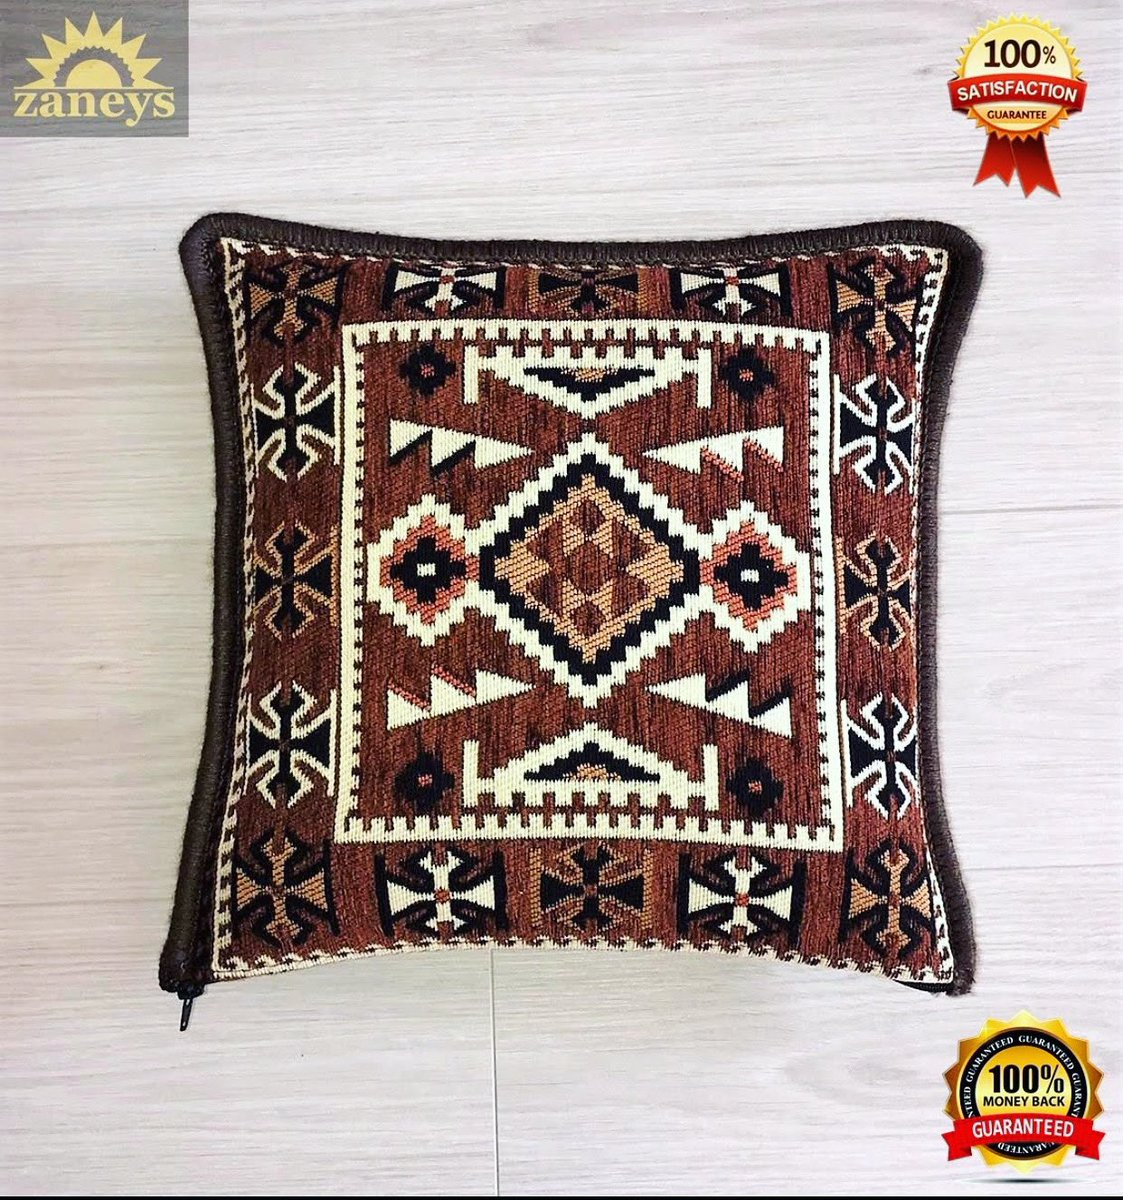 Turkish Persian Style Kilim Cushion Covers Pillow Cases  -ebay and etsy link on bio #kilim #Rug #carpet  #traditionalart #traditional #cushion #pillow #wool #woven #style #aztec #bohemian #multicolor #homedecor #homestyle #vintage #asian #turkish #persian #fashion #desing #art